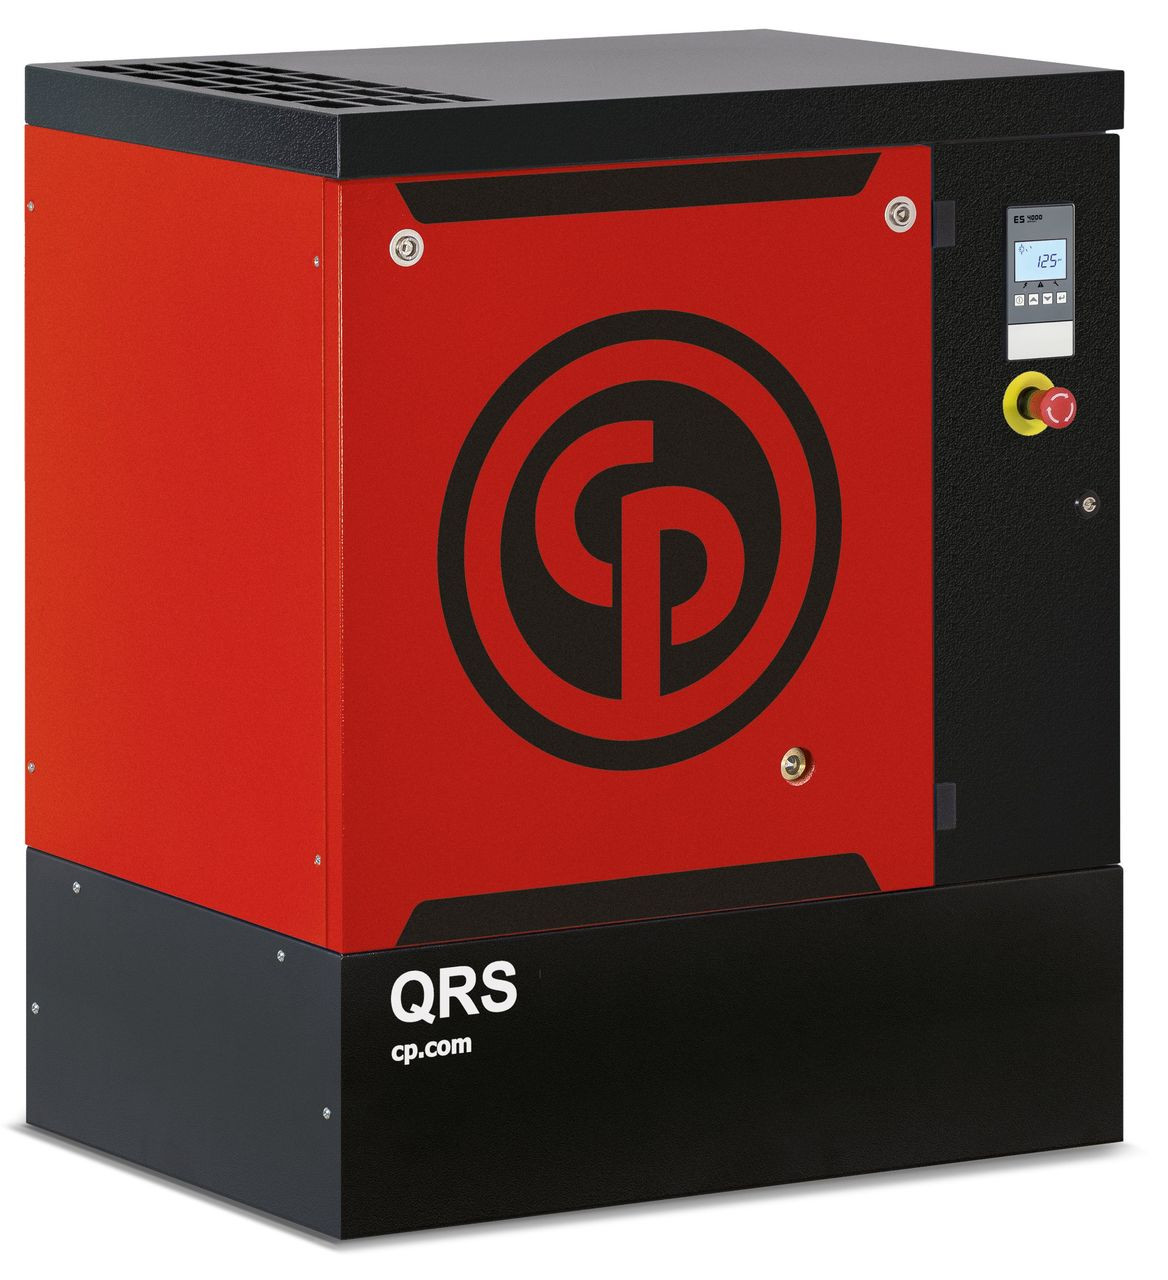 Chicago Pneumatic QRS15HP-125 BM 15 HP 125 psi Base Mount Rotary Screw Air Compressor